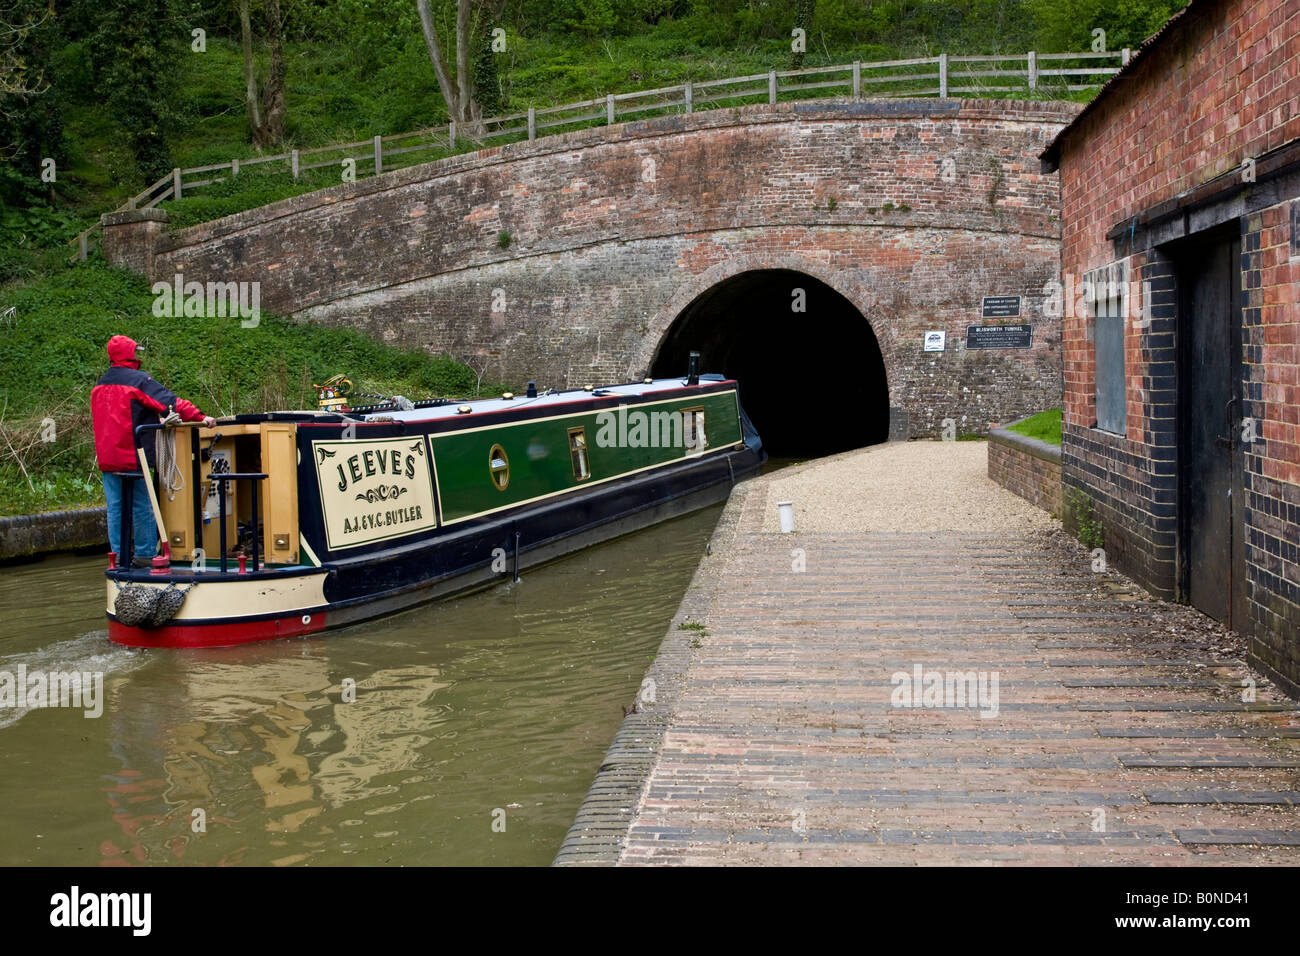 Canal barge entering Blisworth Tunnel, Stoke Bruerne, Grand Union Canal, Northamptonshire - Stock Image